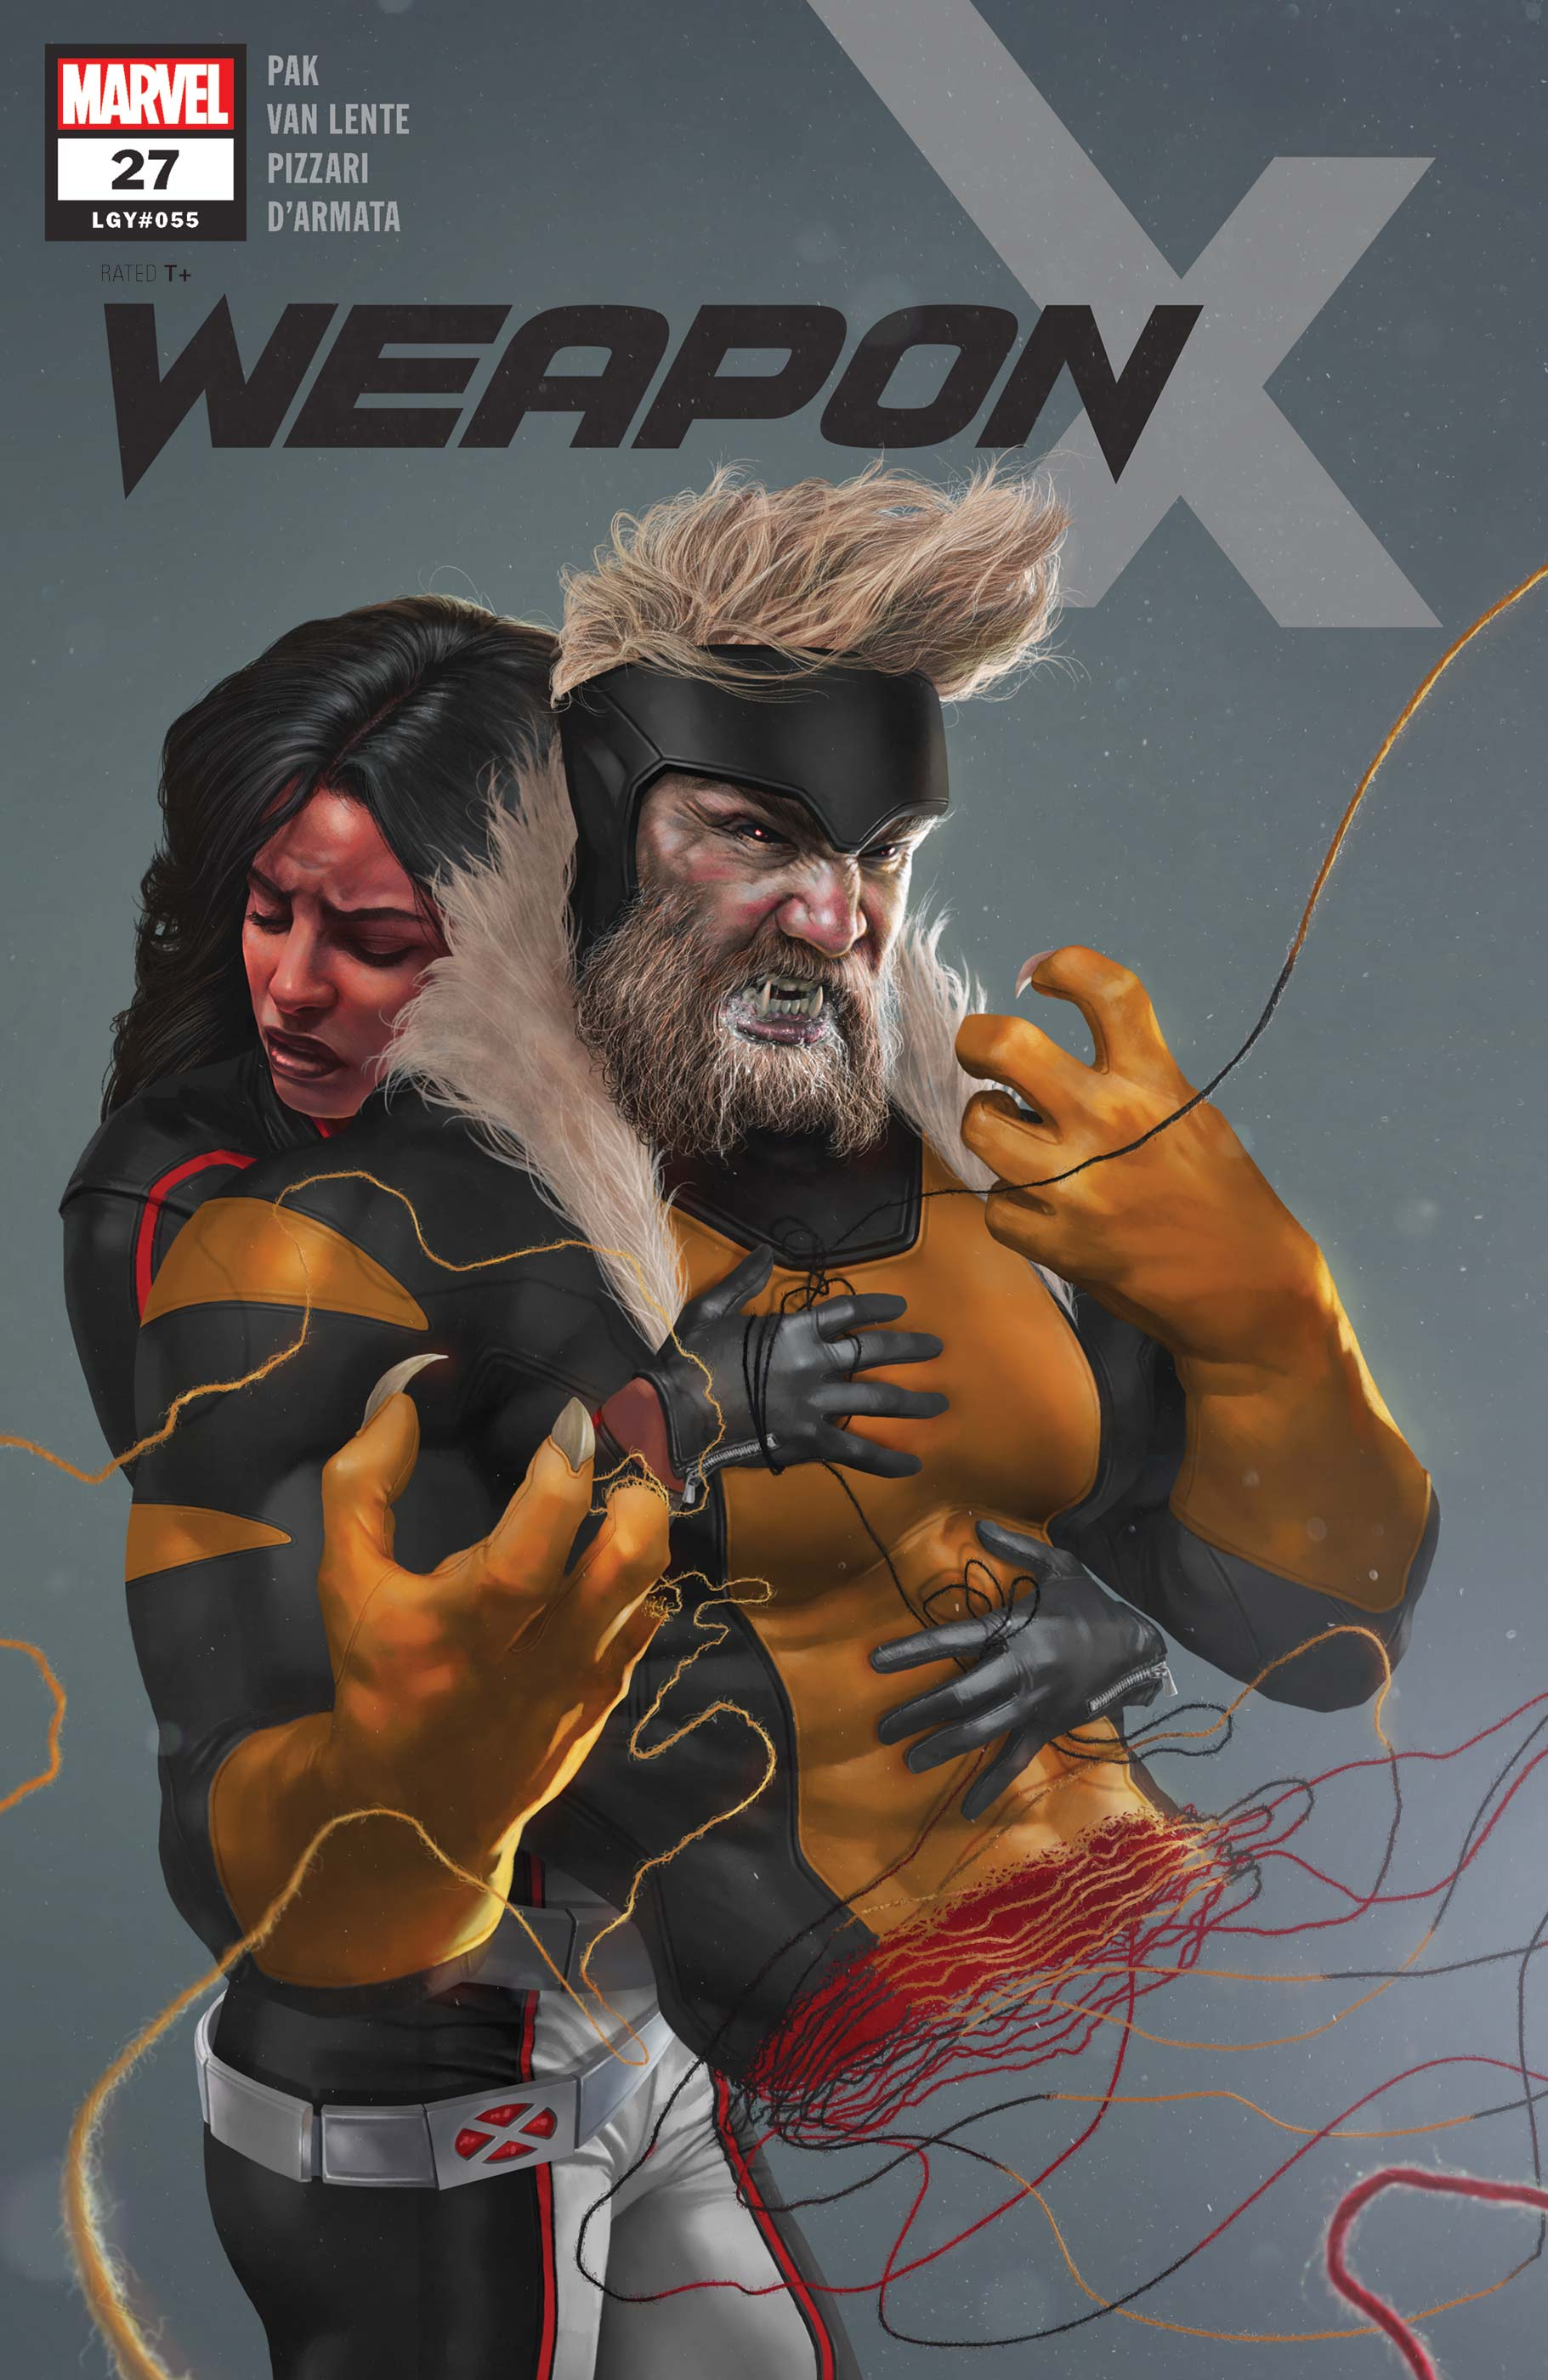 Weapon X (2017) #27